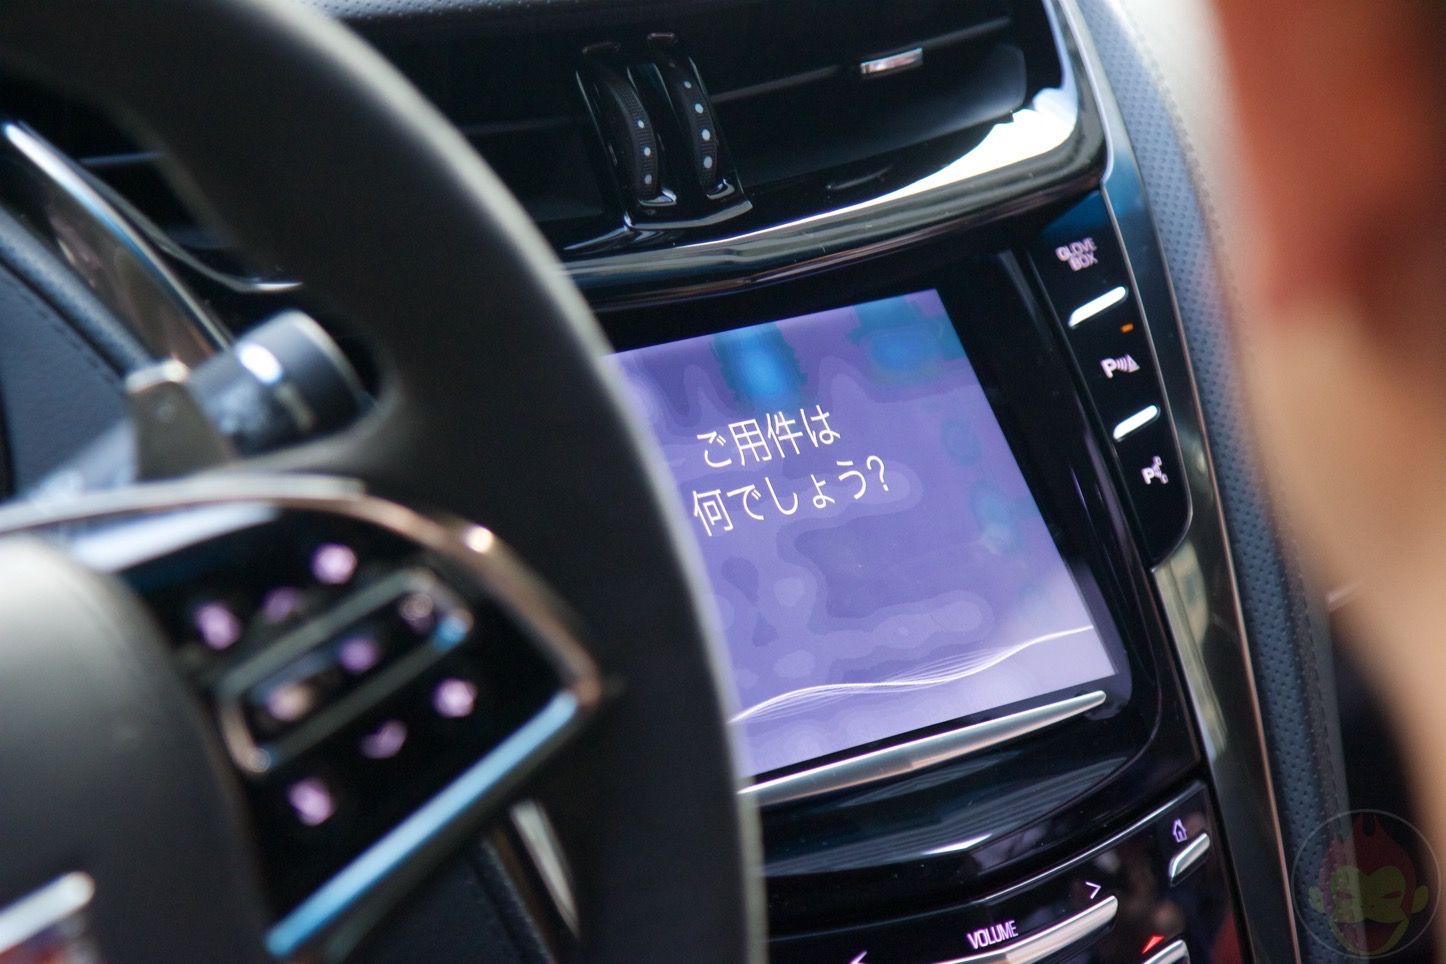 GM cadillac chevrolet carplay